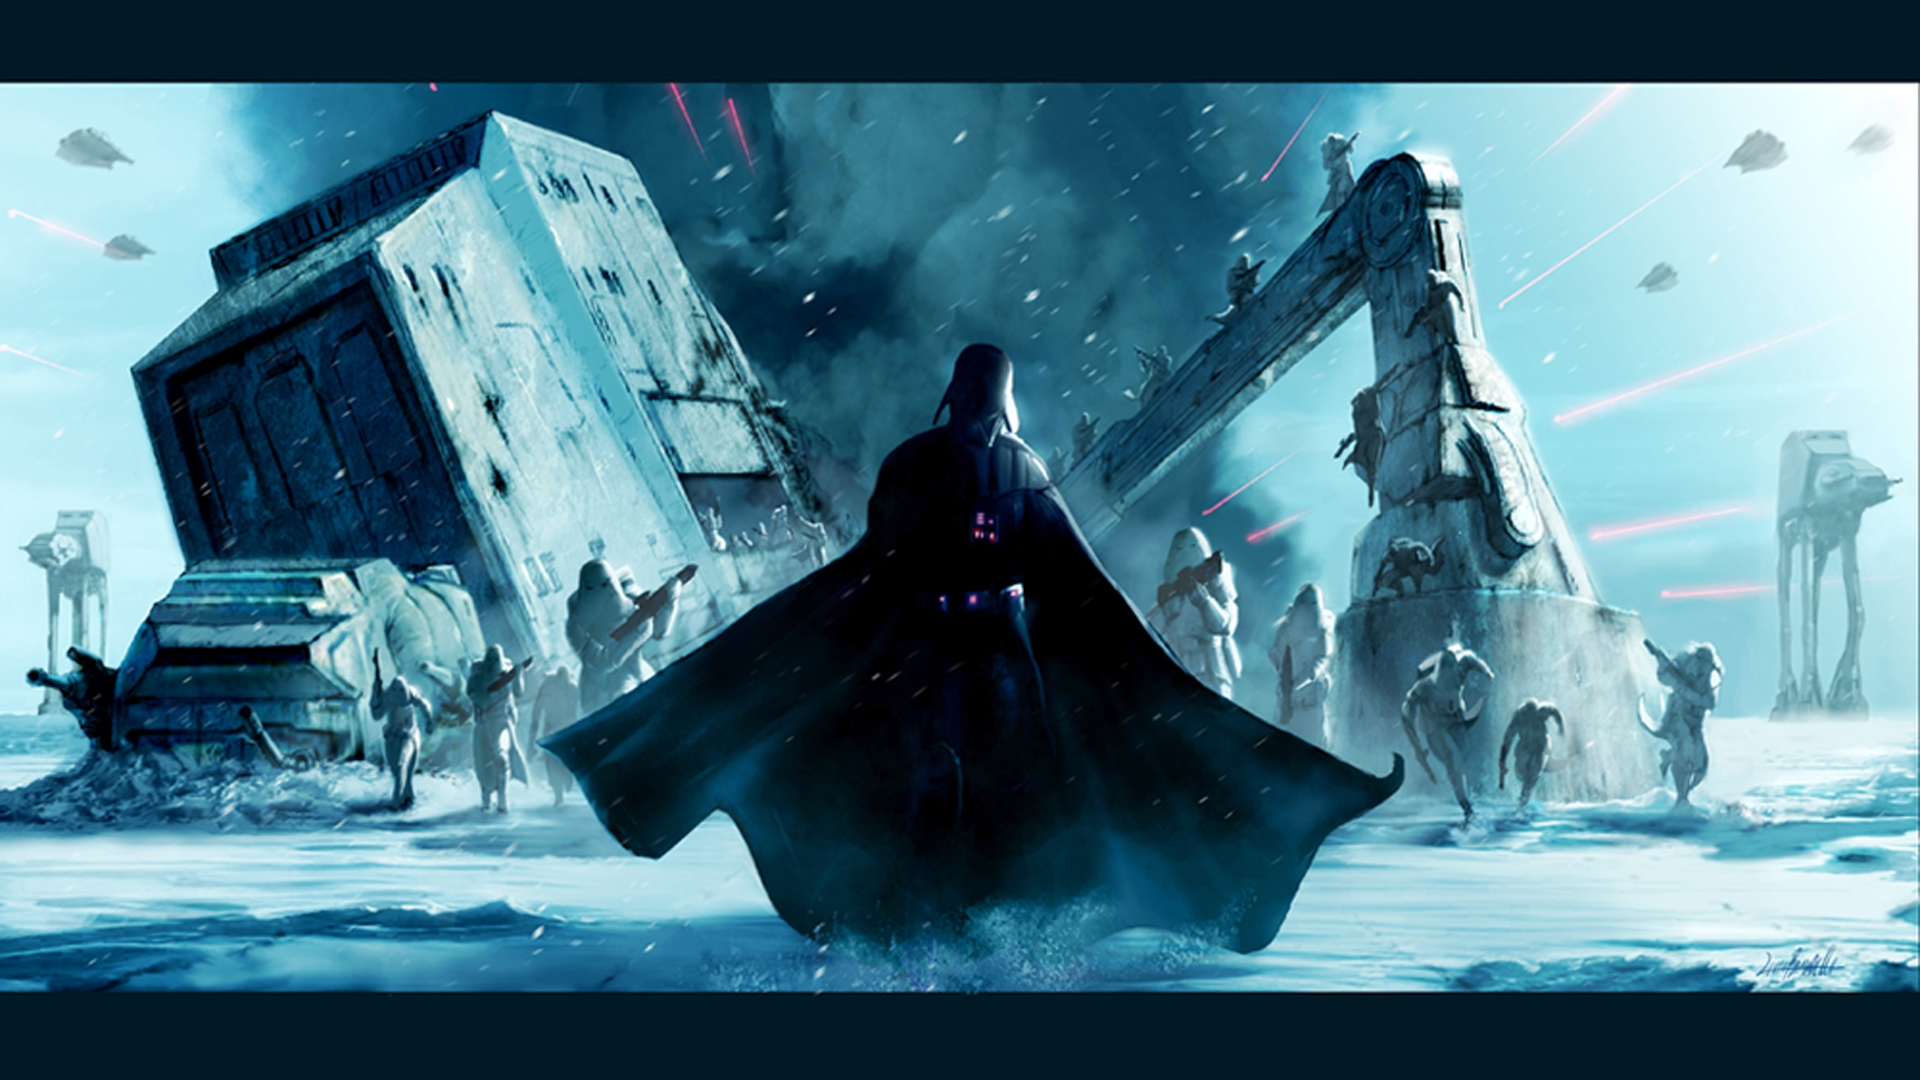 Wars   Darth Vader Hoth HD Wallpaper FullHDWpp   Full HD Wallpapers 1920x1080